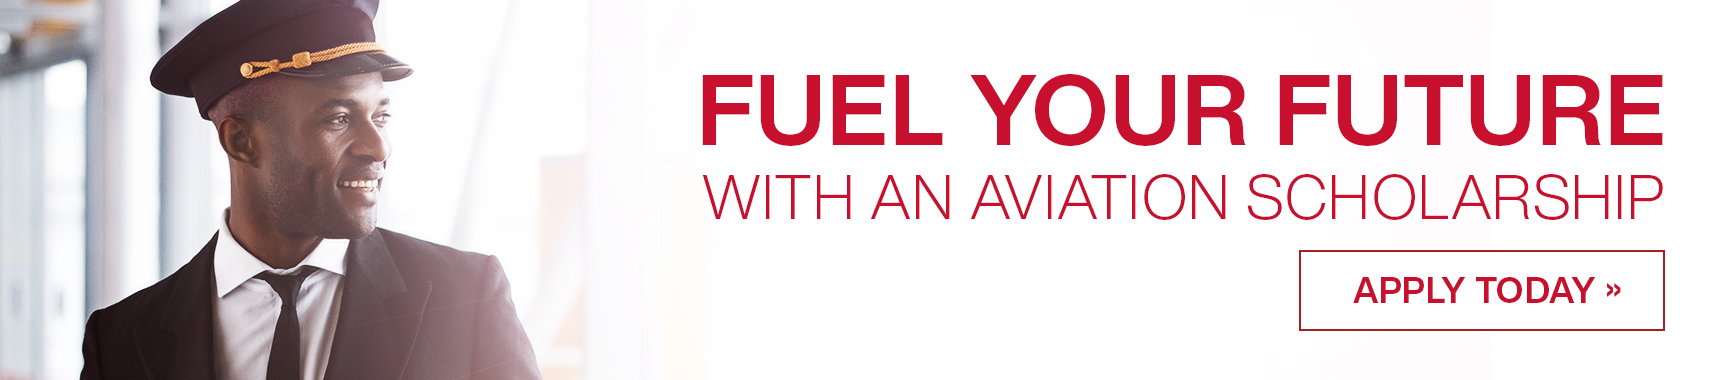 Fuel Your Future with an Aviation Scholarship